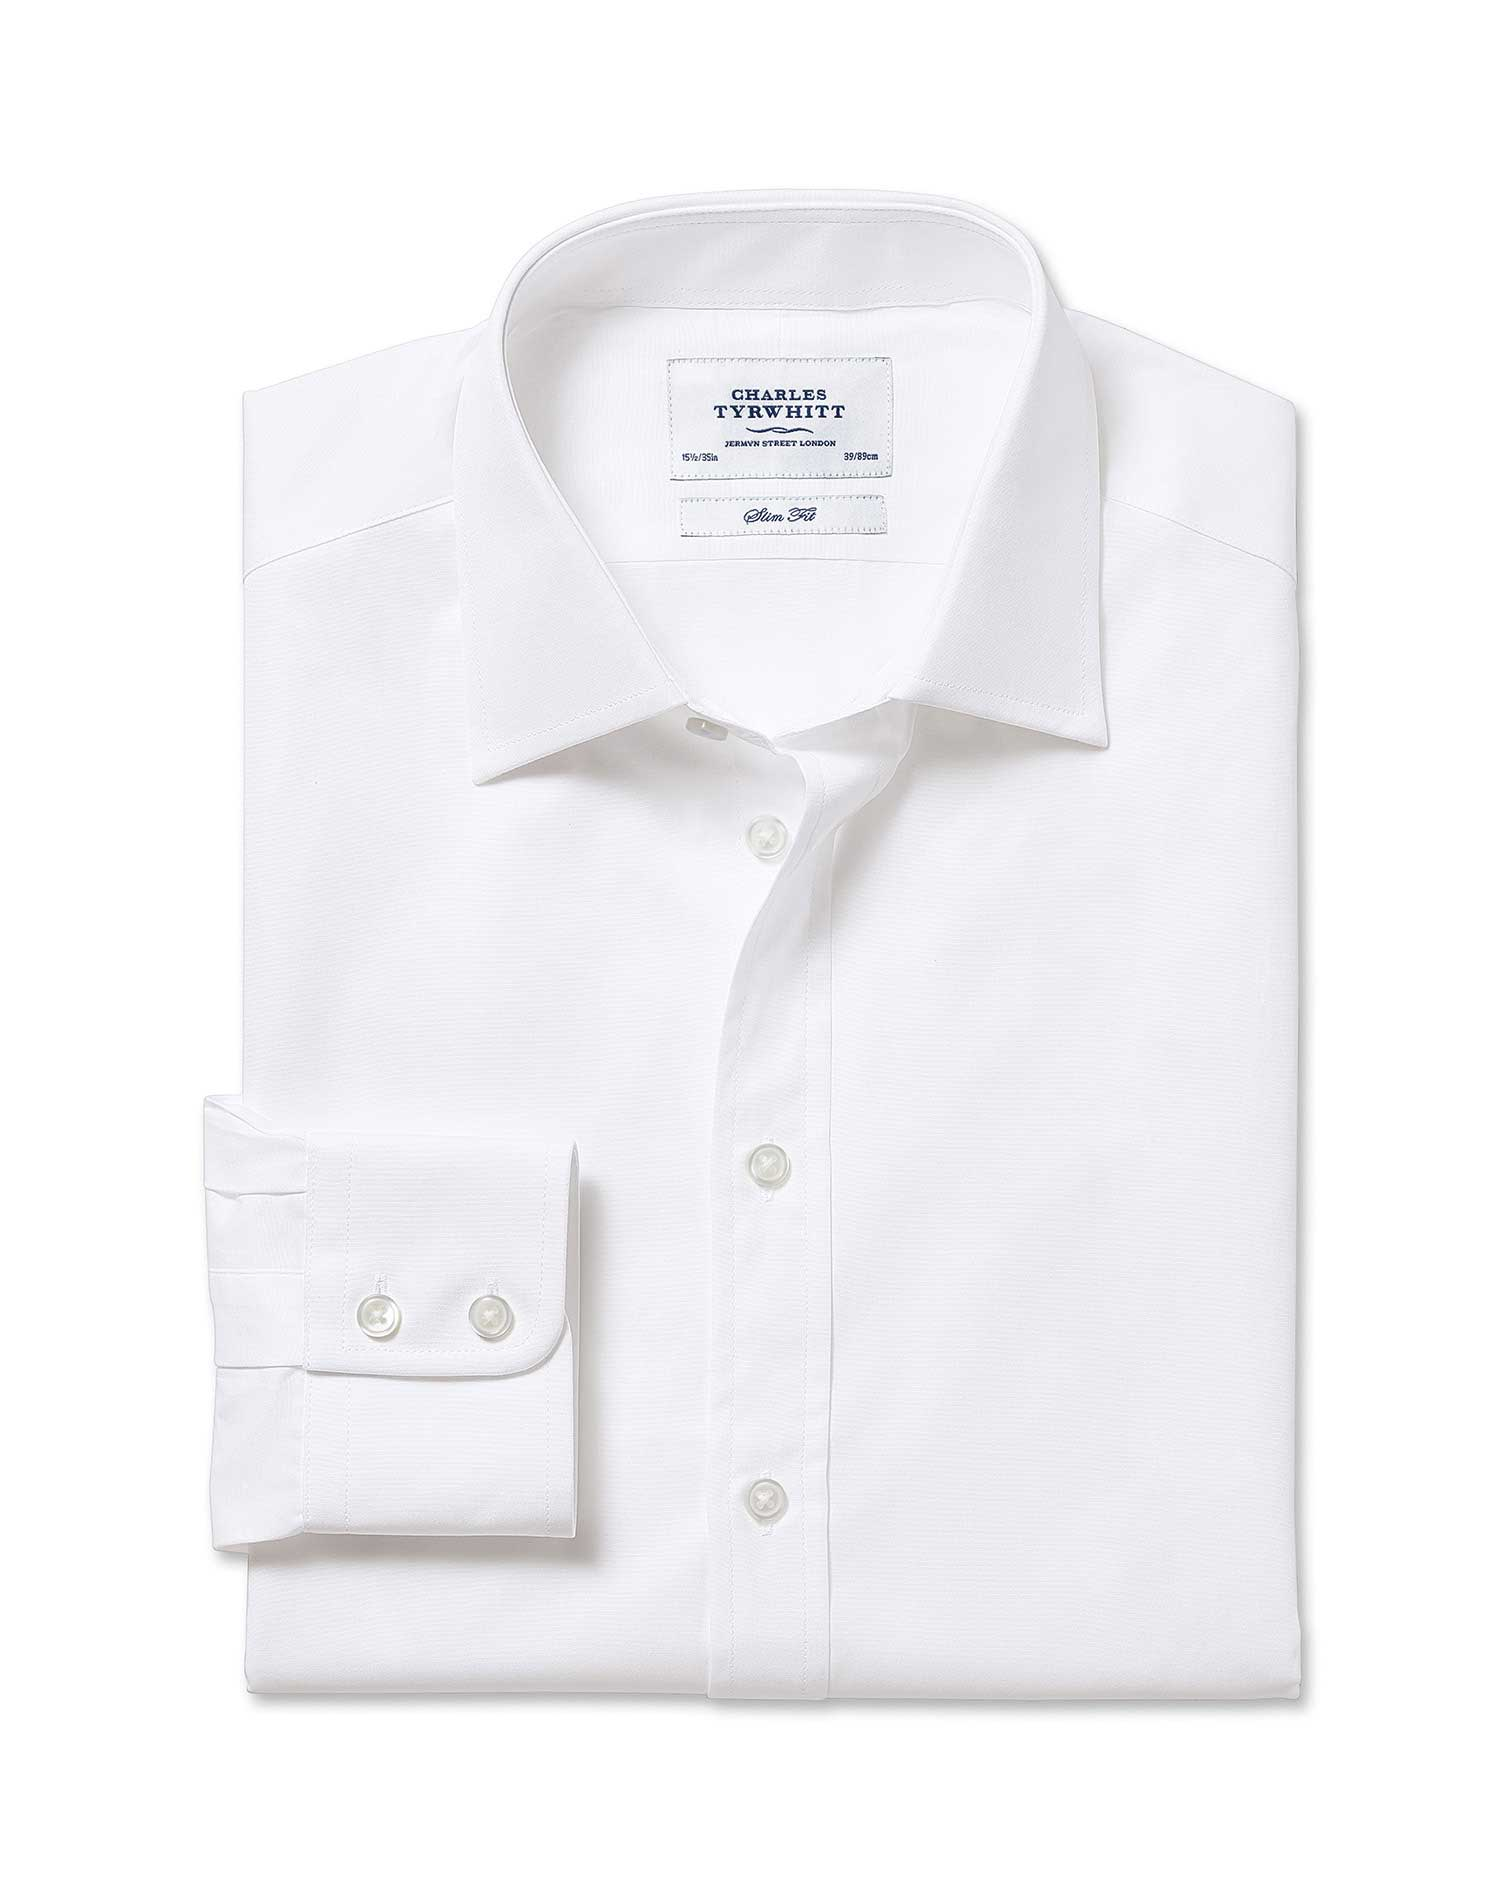 Extra Slim Fit Egyptian Cotton Poplin White Formal Shirt Double Cuff Size 16/36 by Charles Tyrwhitt